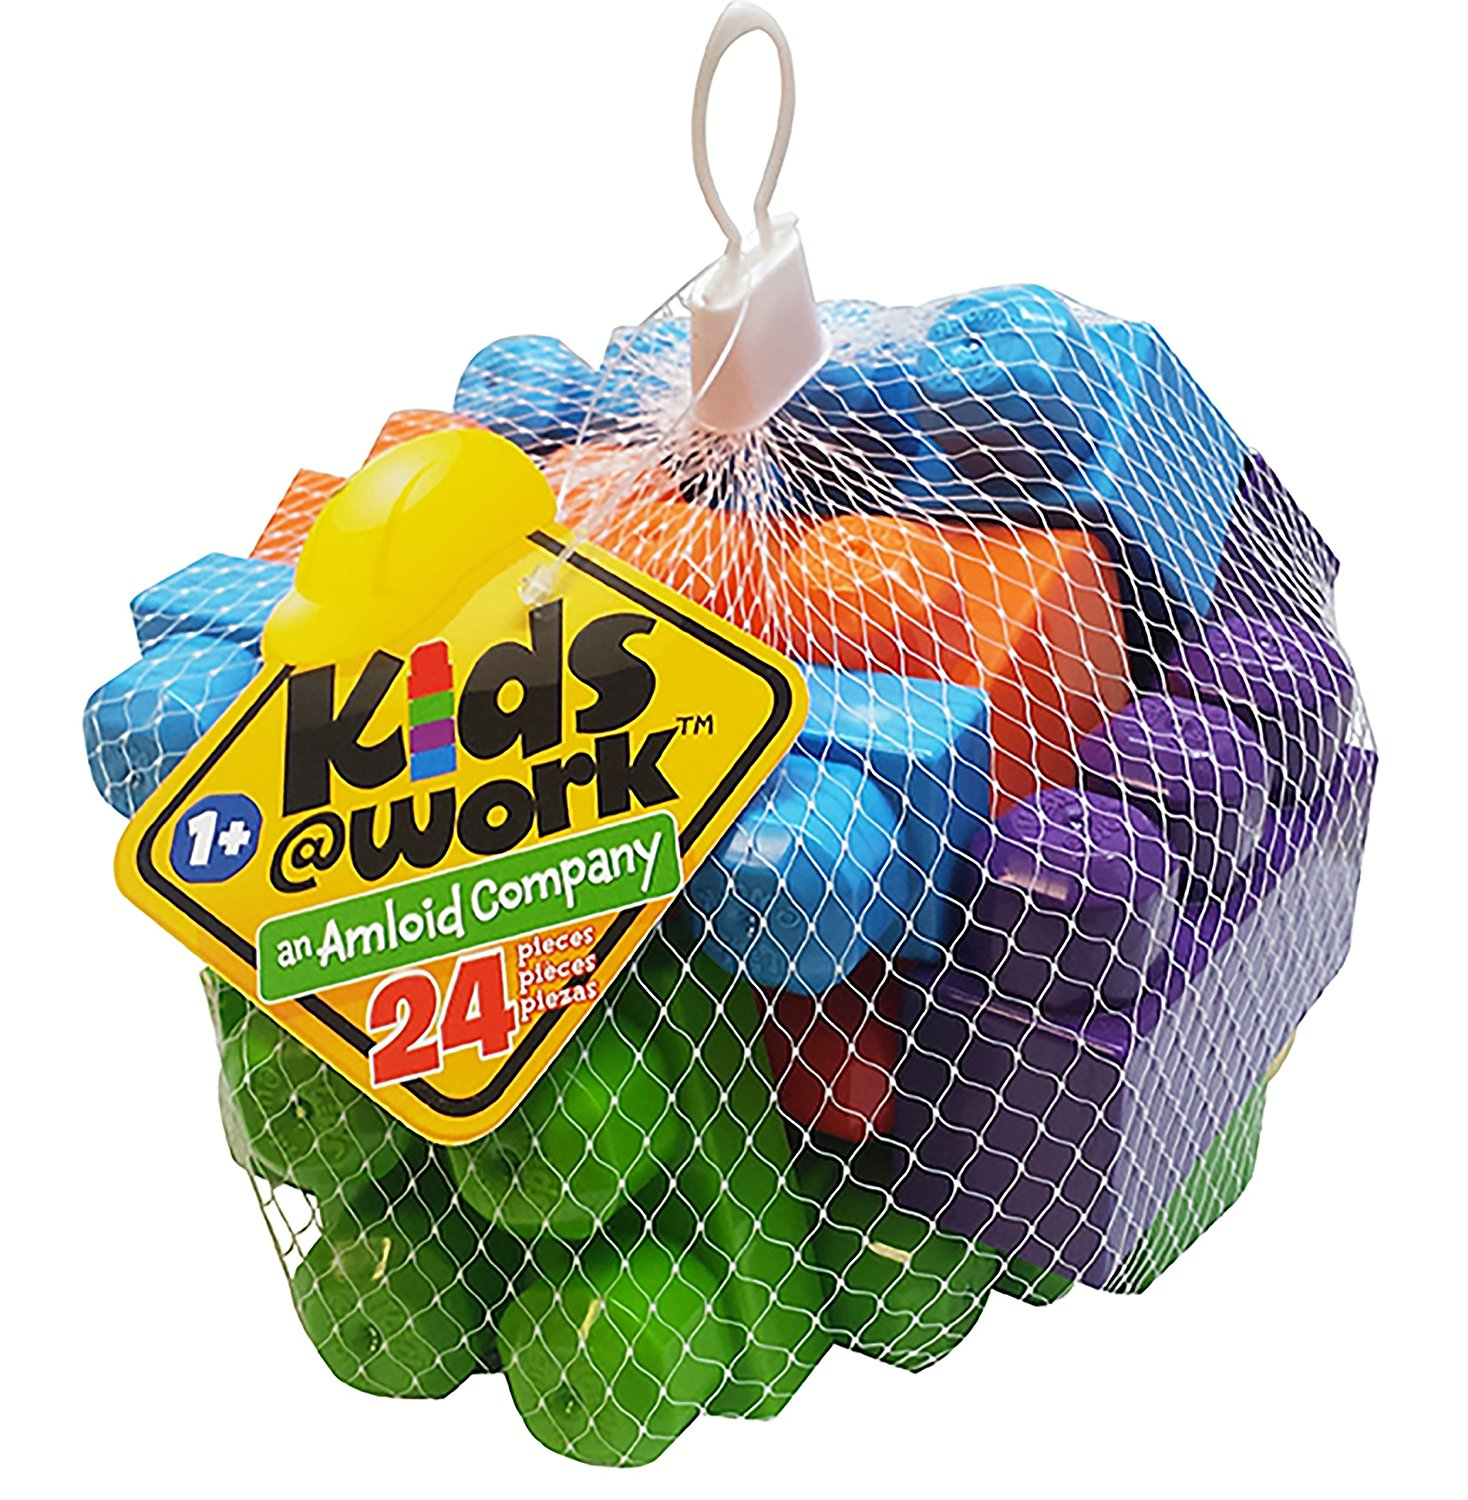 Kids at Work Block Set, Netted, 24-Piece, Plastic blocks to assemble; Made in bright colors By Amloid